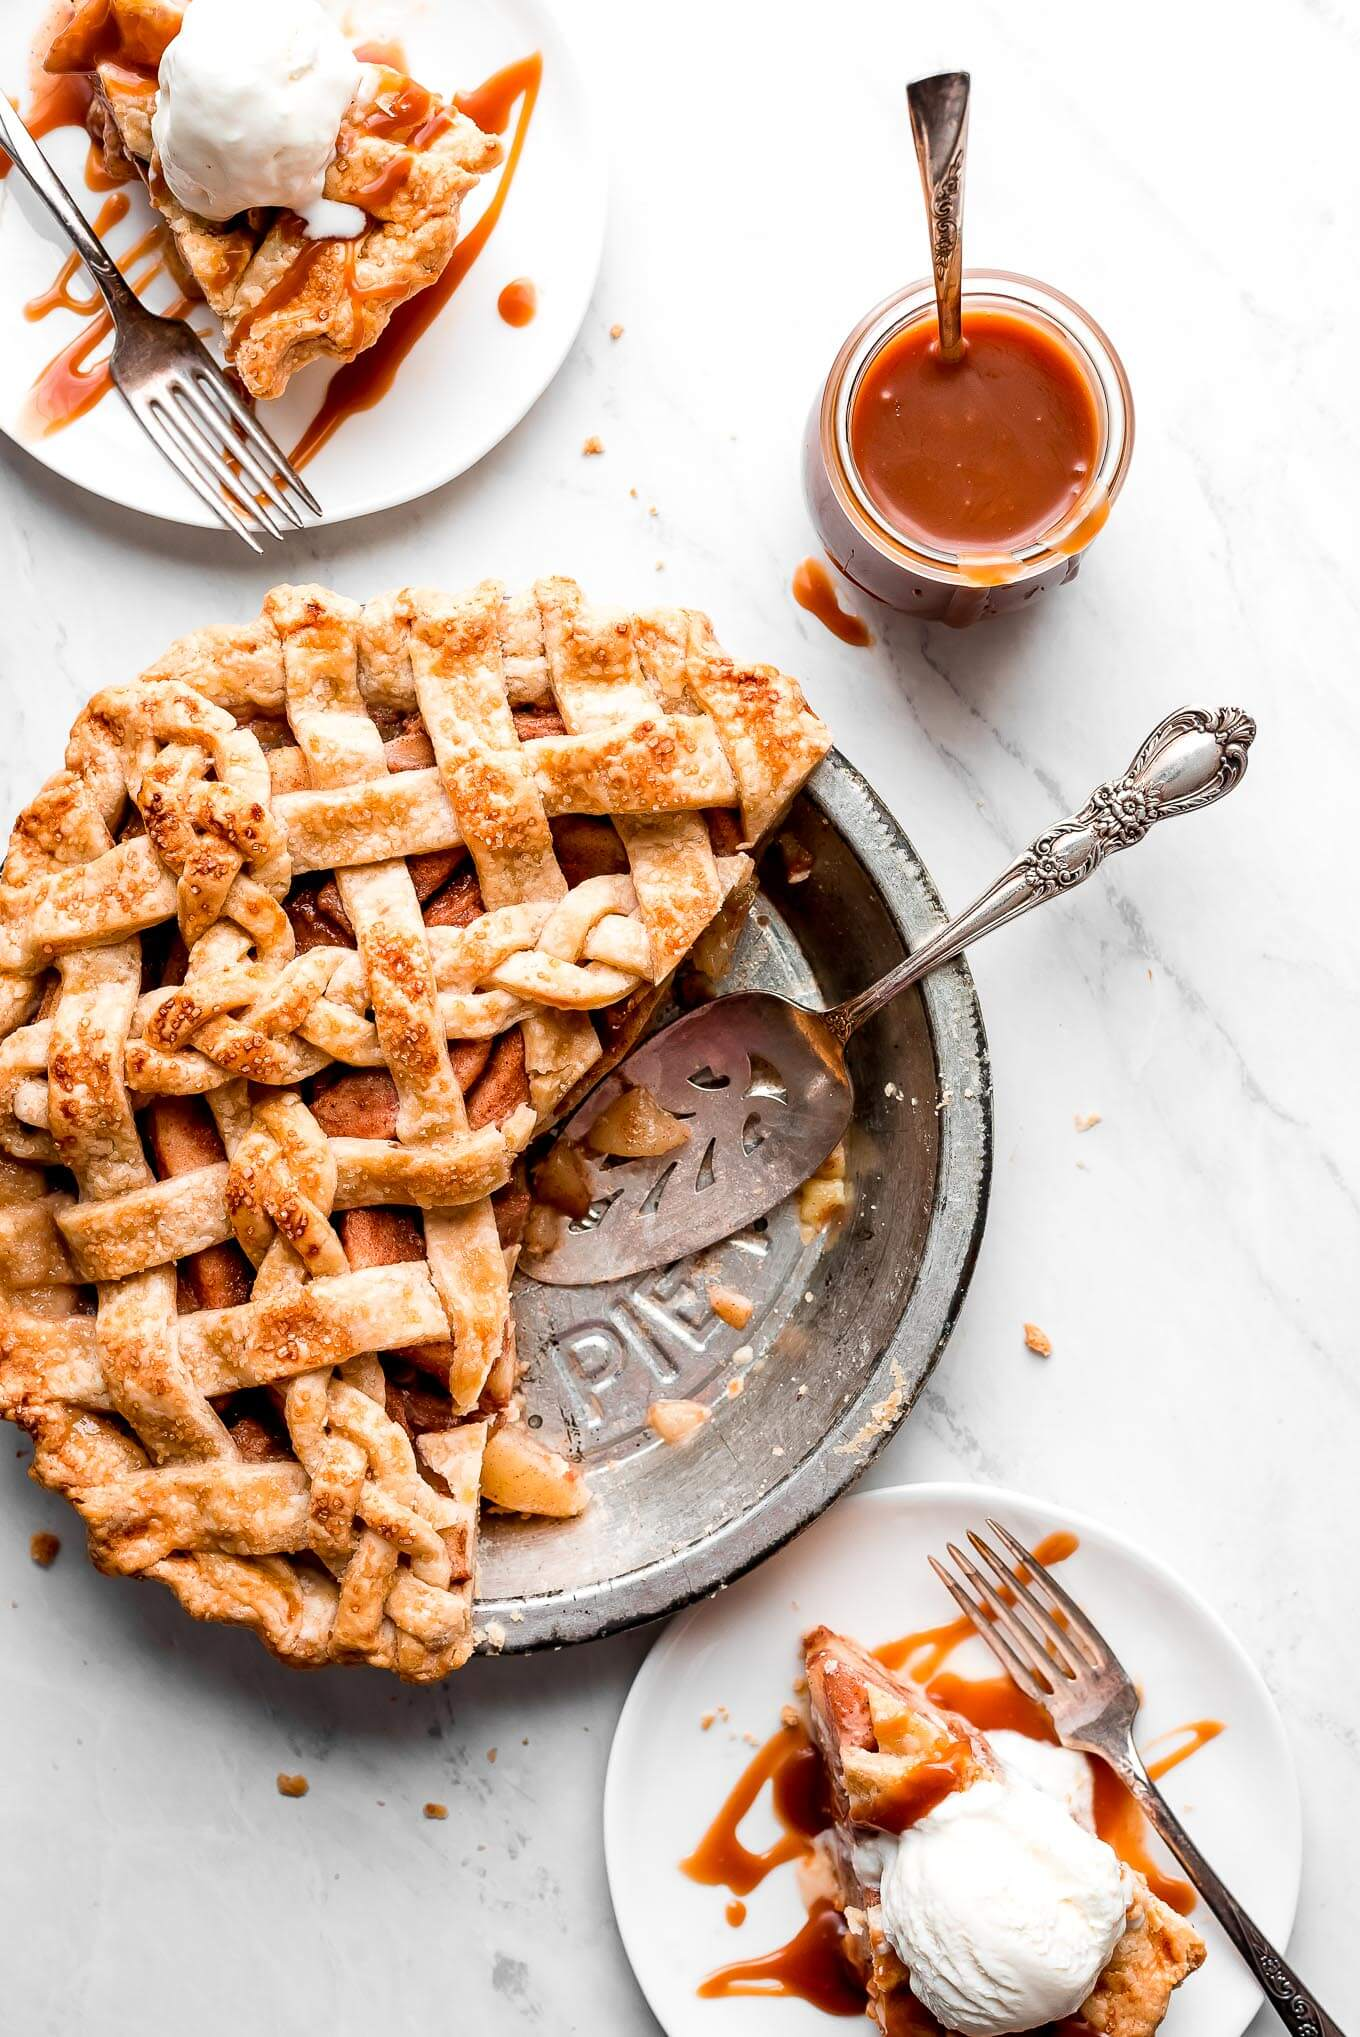 A Pear Pie with a lattice top, two slices cut out of it and on plates, drizzled with caramel and topped with ice cream.